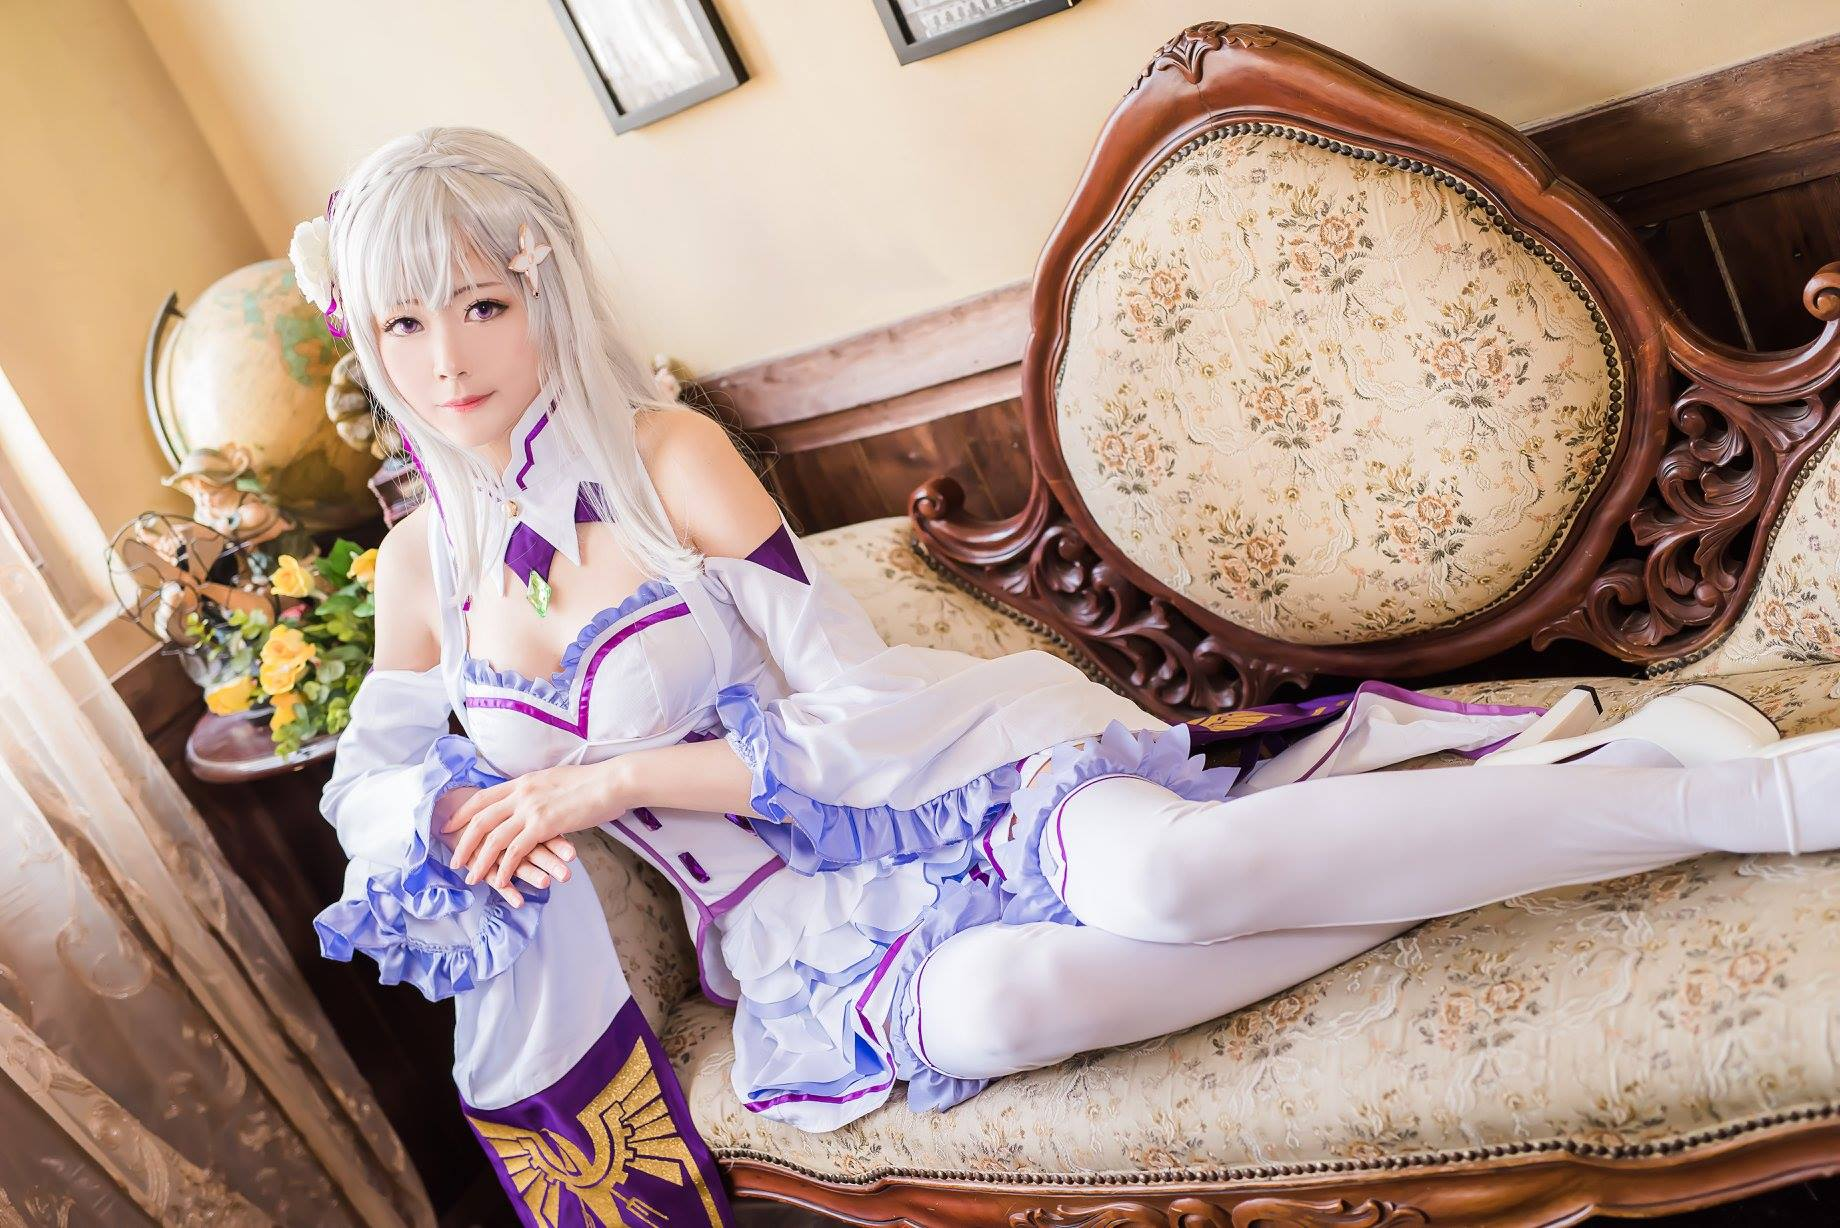 Arty as Emilia from 'Re:Zero − Starting Life in Another World' | Arty from Taiwan | MANGA.TOKYO World Cosplayers | Artyさん/『Re:ゼロから始める異世界生活』エミリア